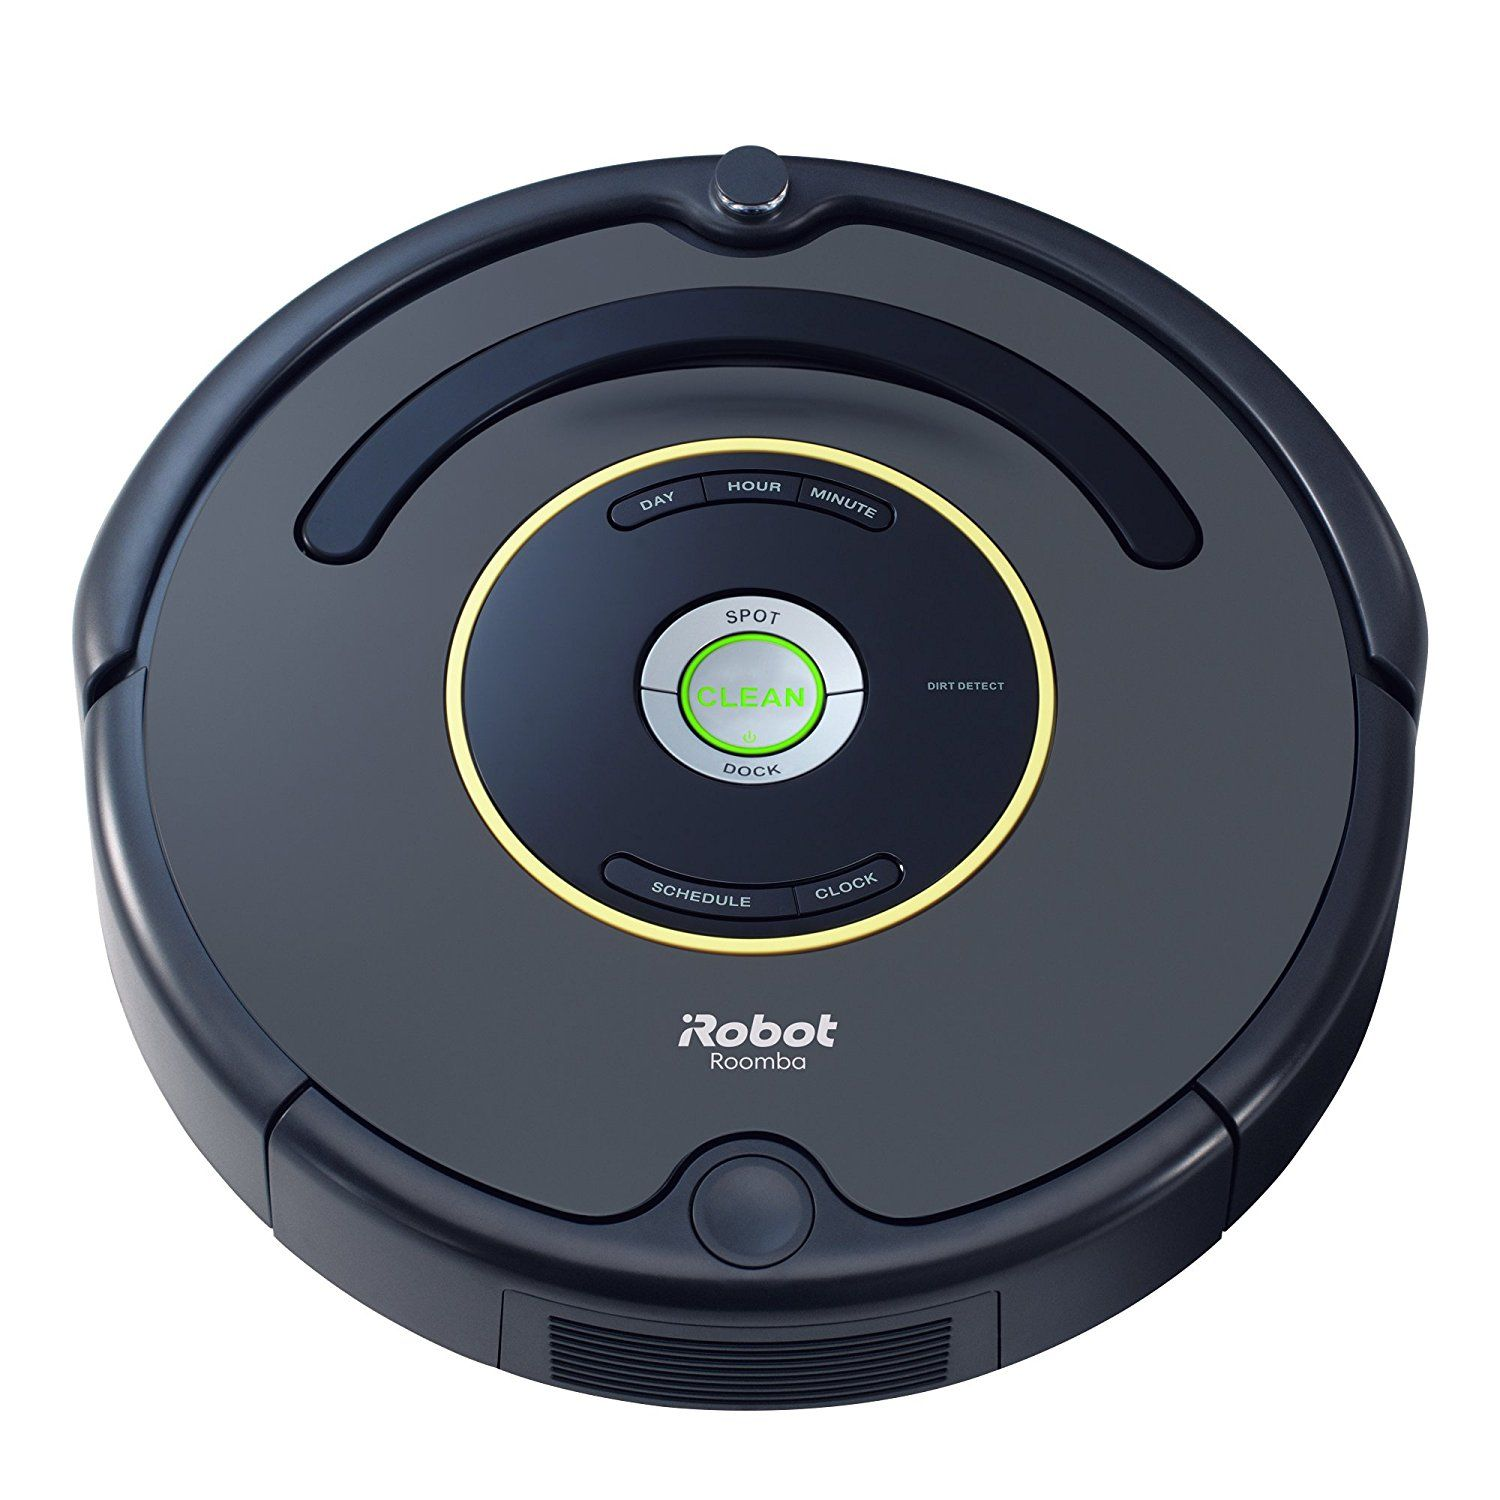 Deal Alert Irobot Roomba Robotic Vacuum Cleaner 33 Off Roomba 650 Irobot Roomba Robot Vacuum Cleaner